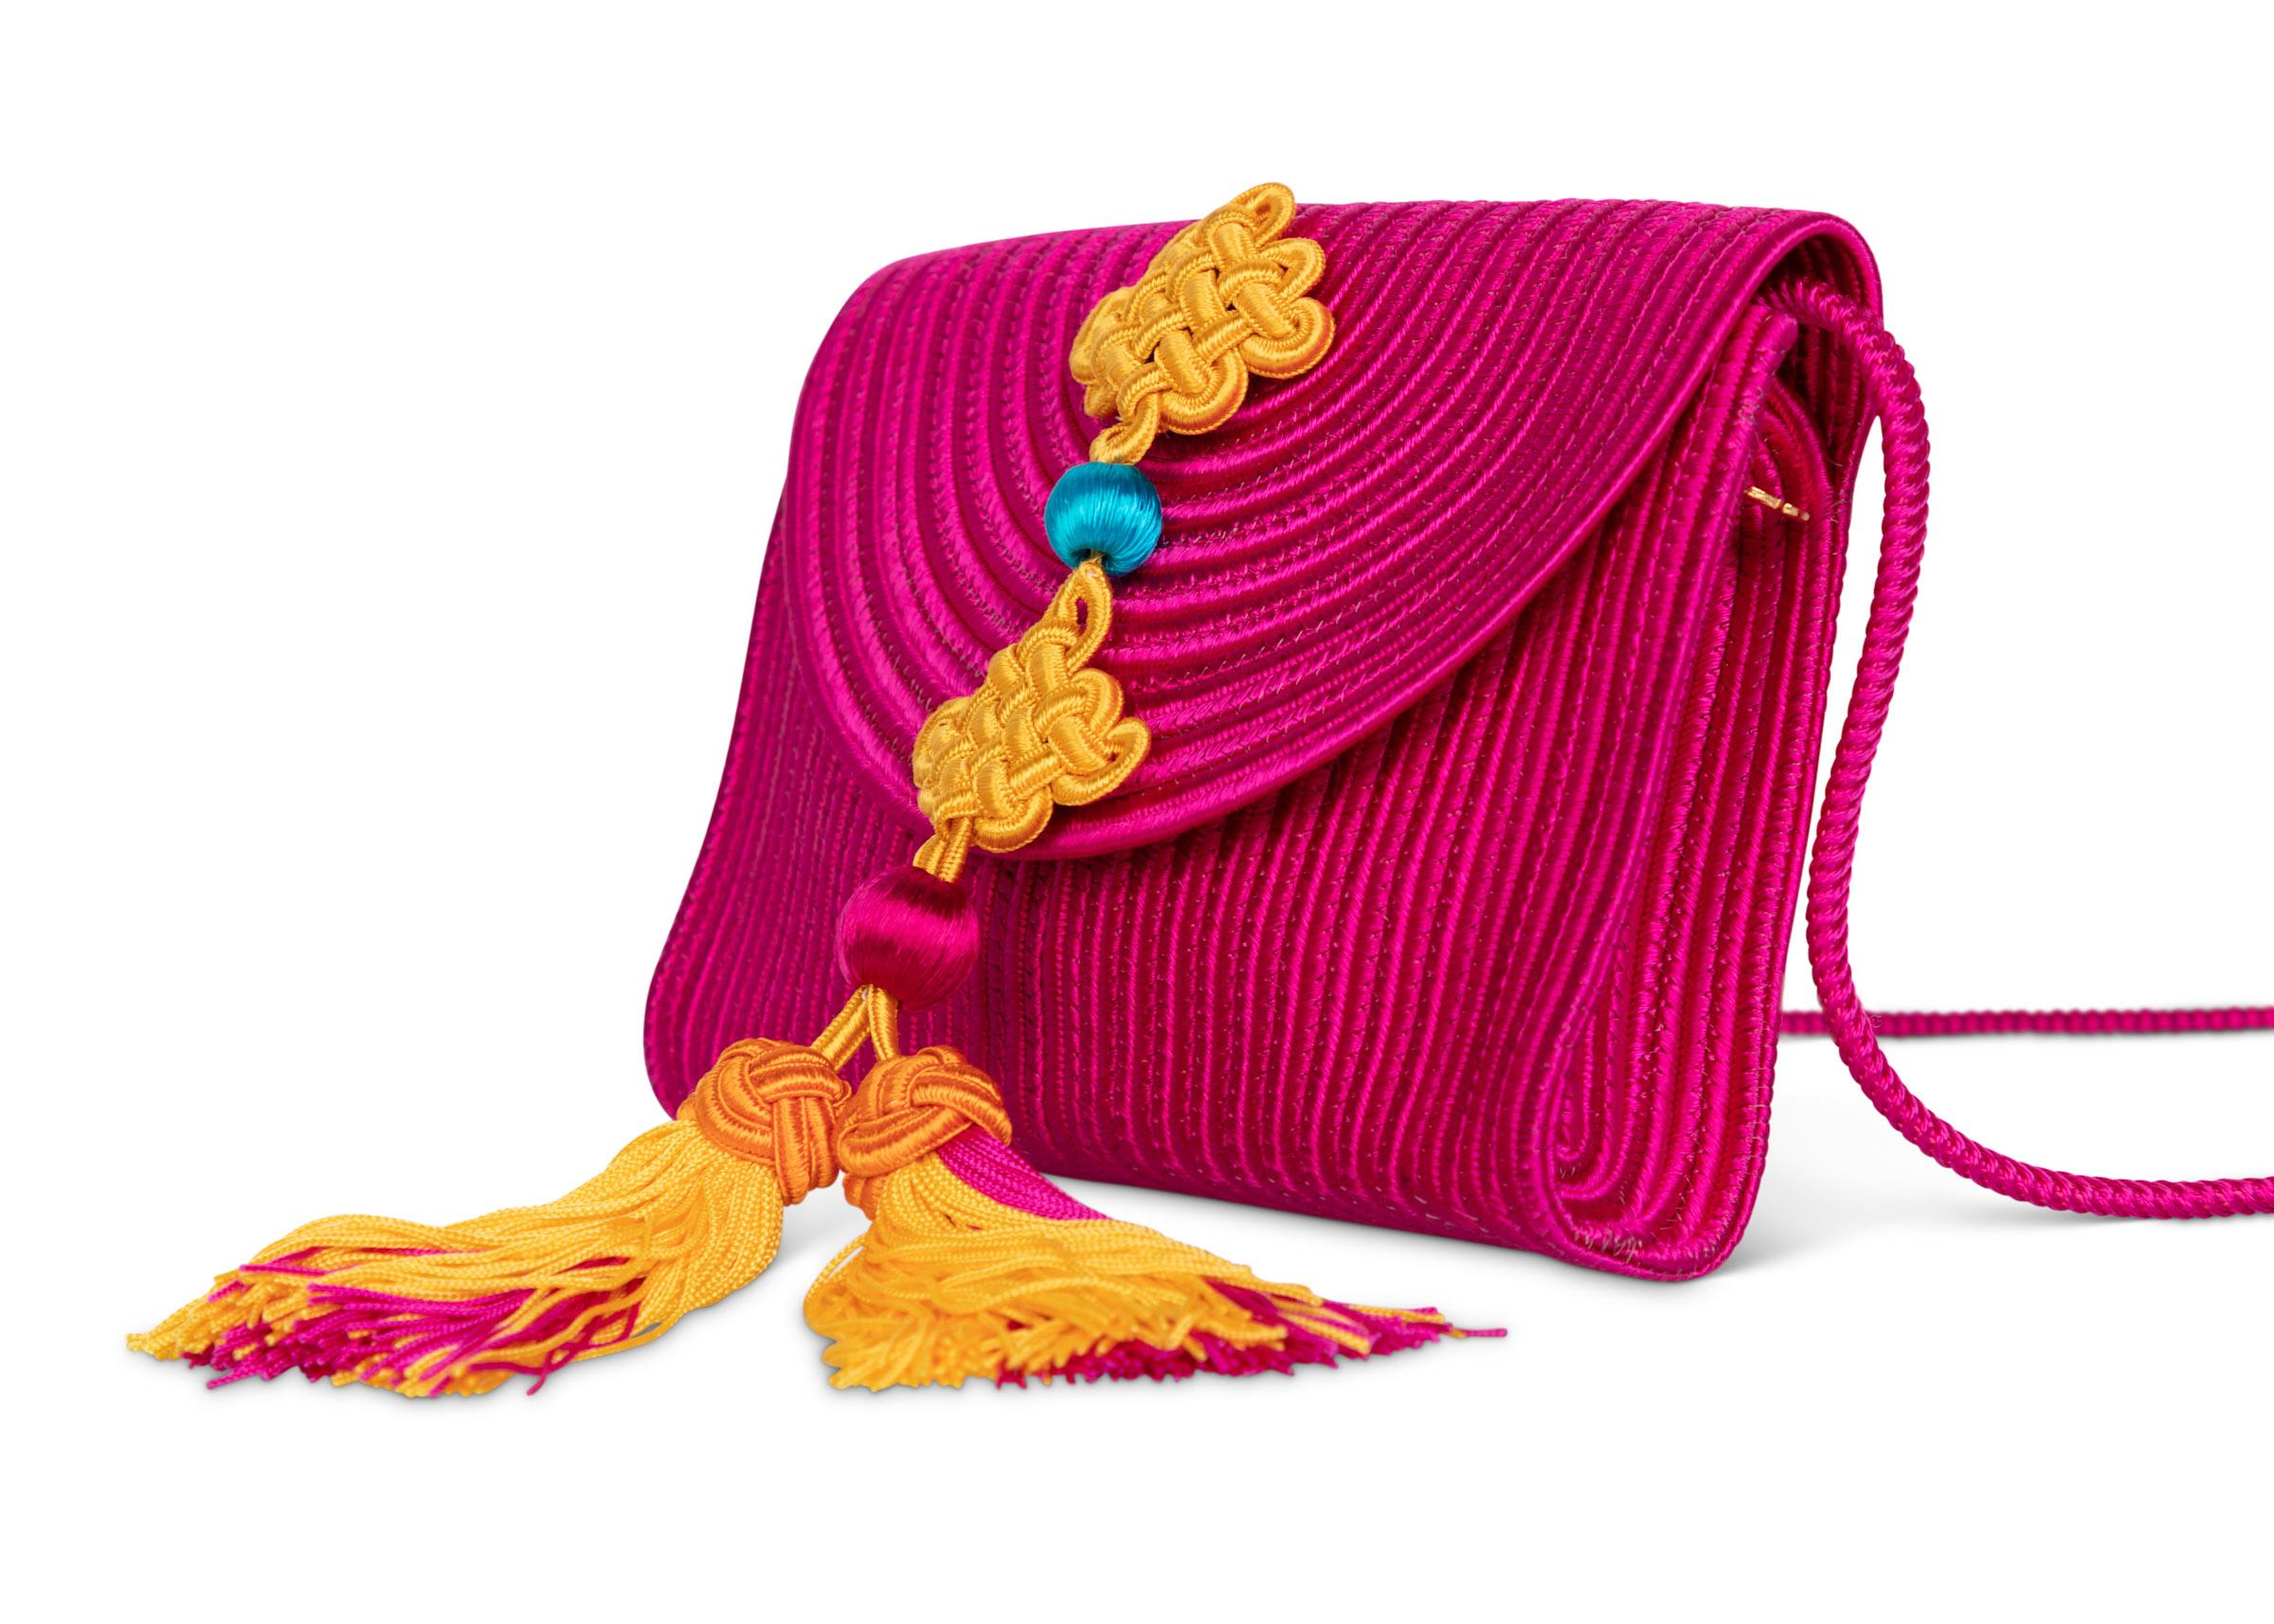 dd12388472db Yves Saint Laurent YSL Pink Passementerie Yellow Tassel Shoulder Bag ...